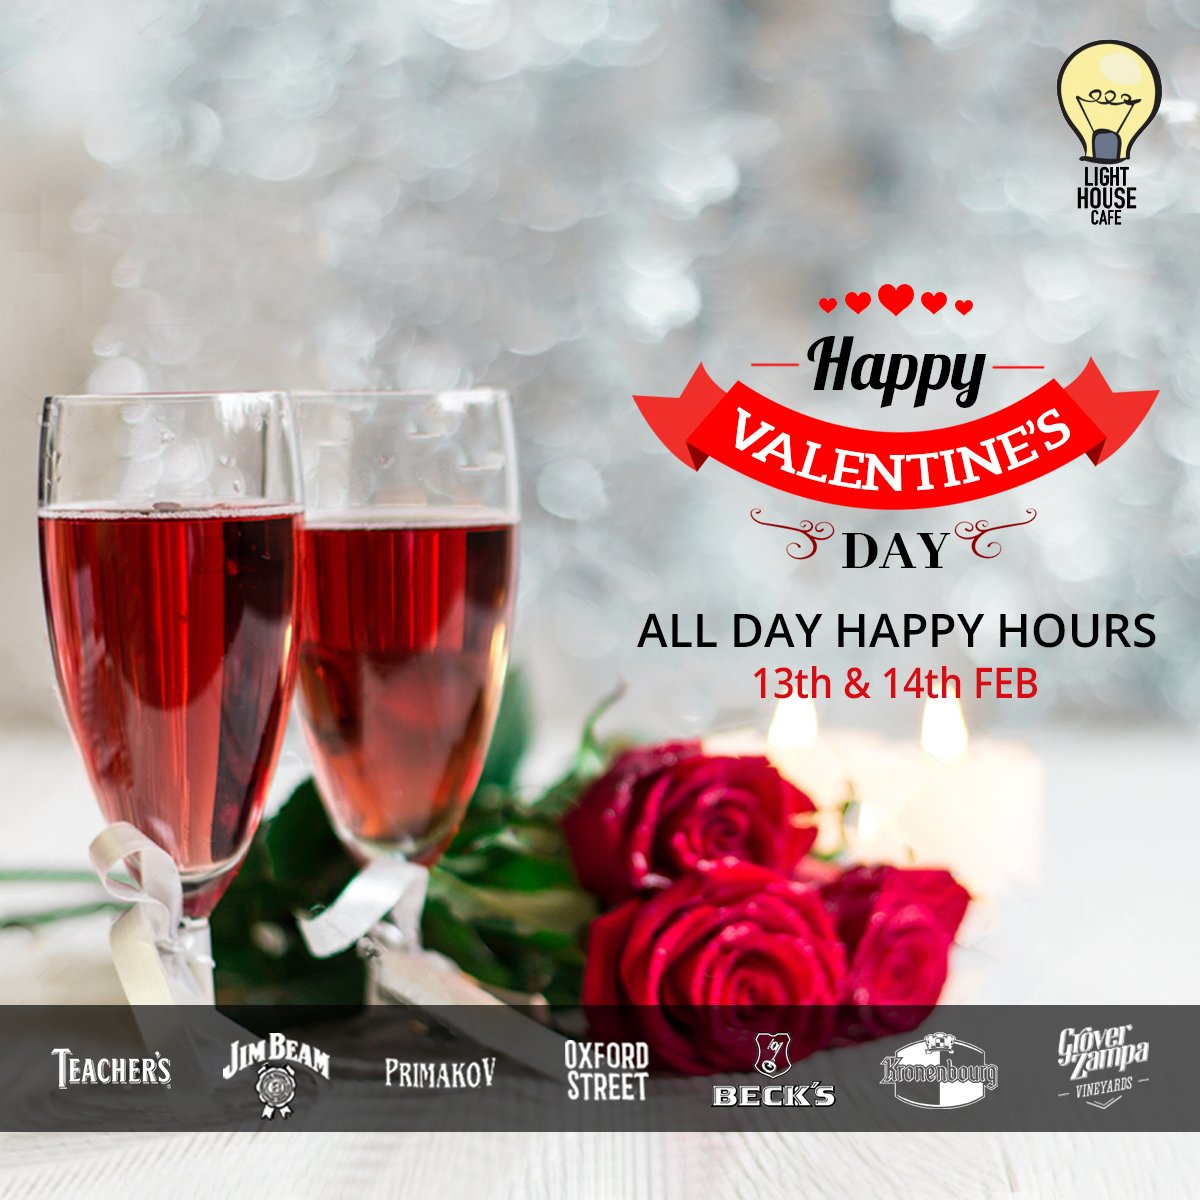 Double up your love and happiness this Valentines as we are celebrating love with our all day long Happy Hours only at Light House Cafe Mumbai  Wishing you all a Happy Valentines Day !!  #LHC #Worli #Mumbai #Zomato #Blogpost #bloggers #Weekday #CurlyTales #Weekends #Thingstodo